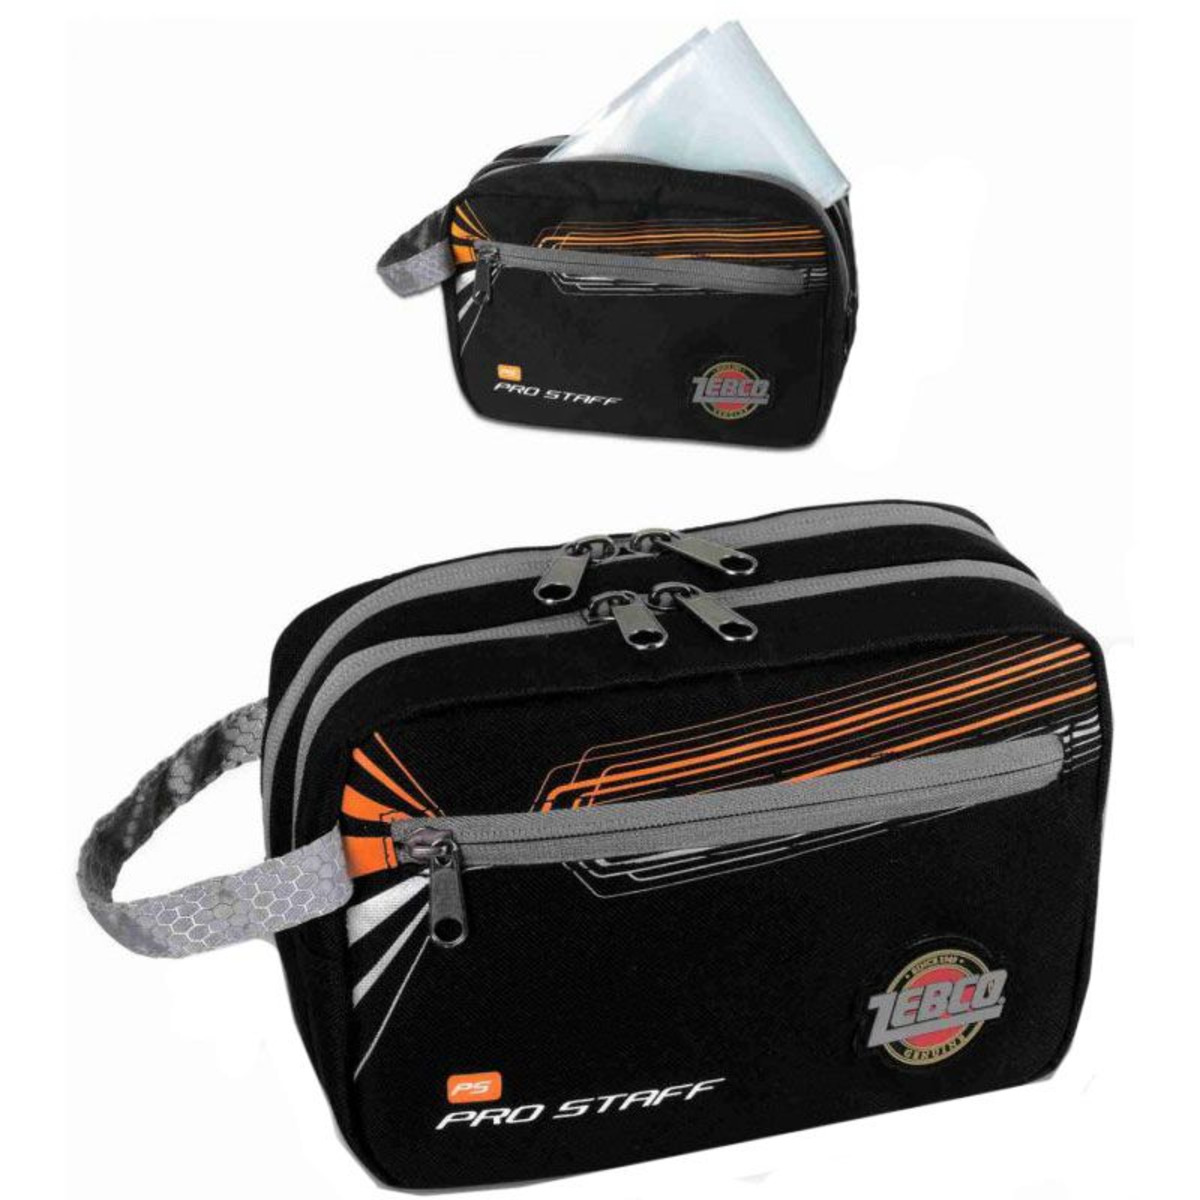 Zebco Pro Staff Rig and Tool Bag - 21x14x7 cm